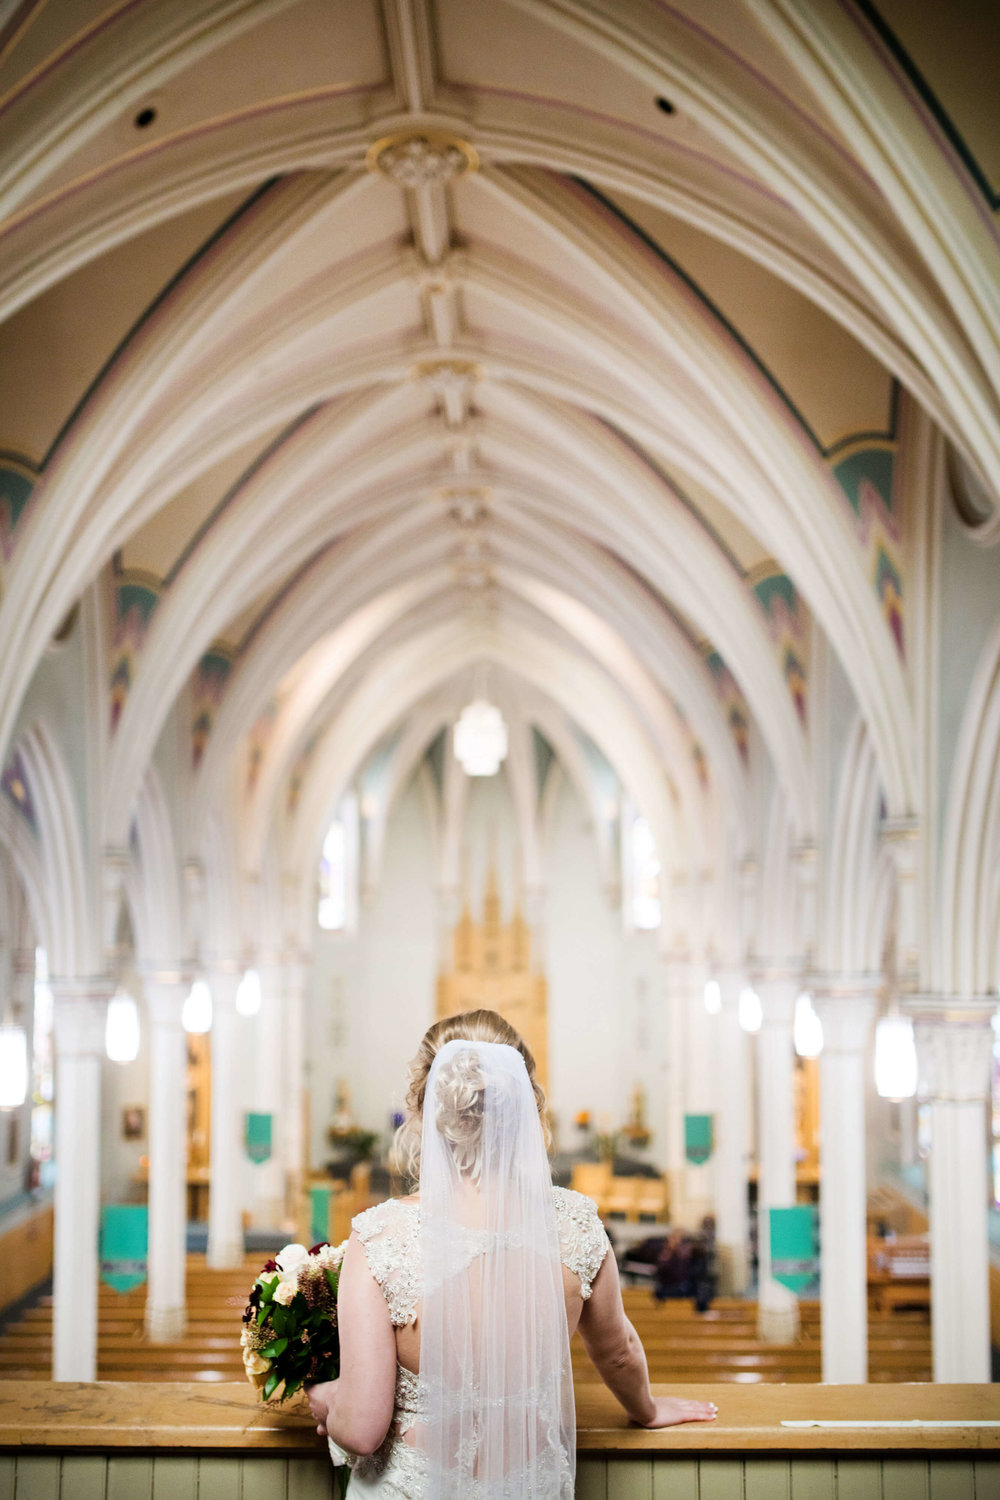 bride looking out at the congregation with church ceiling details | Minnesota wedding photographer Studio KH wedding dress details | wedding blog | Sixpence Events 70 Ways to Photograph Your Wedding Dress.jpg